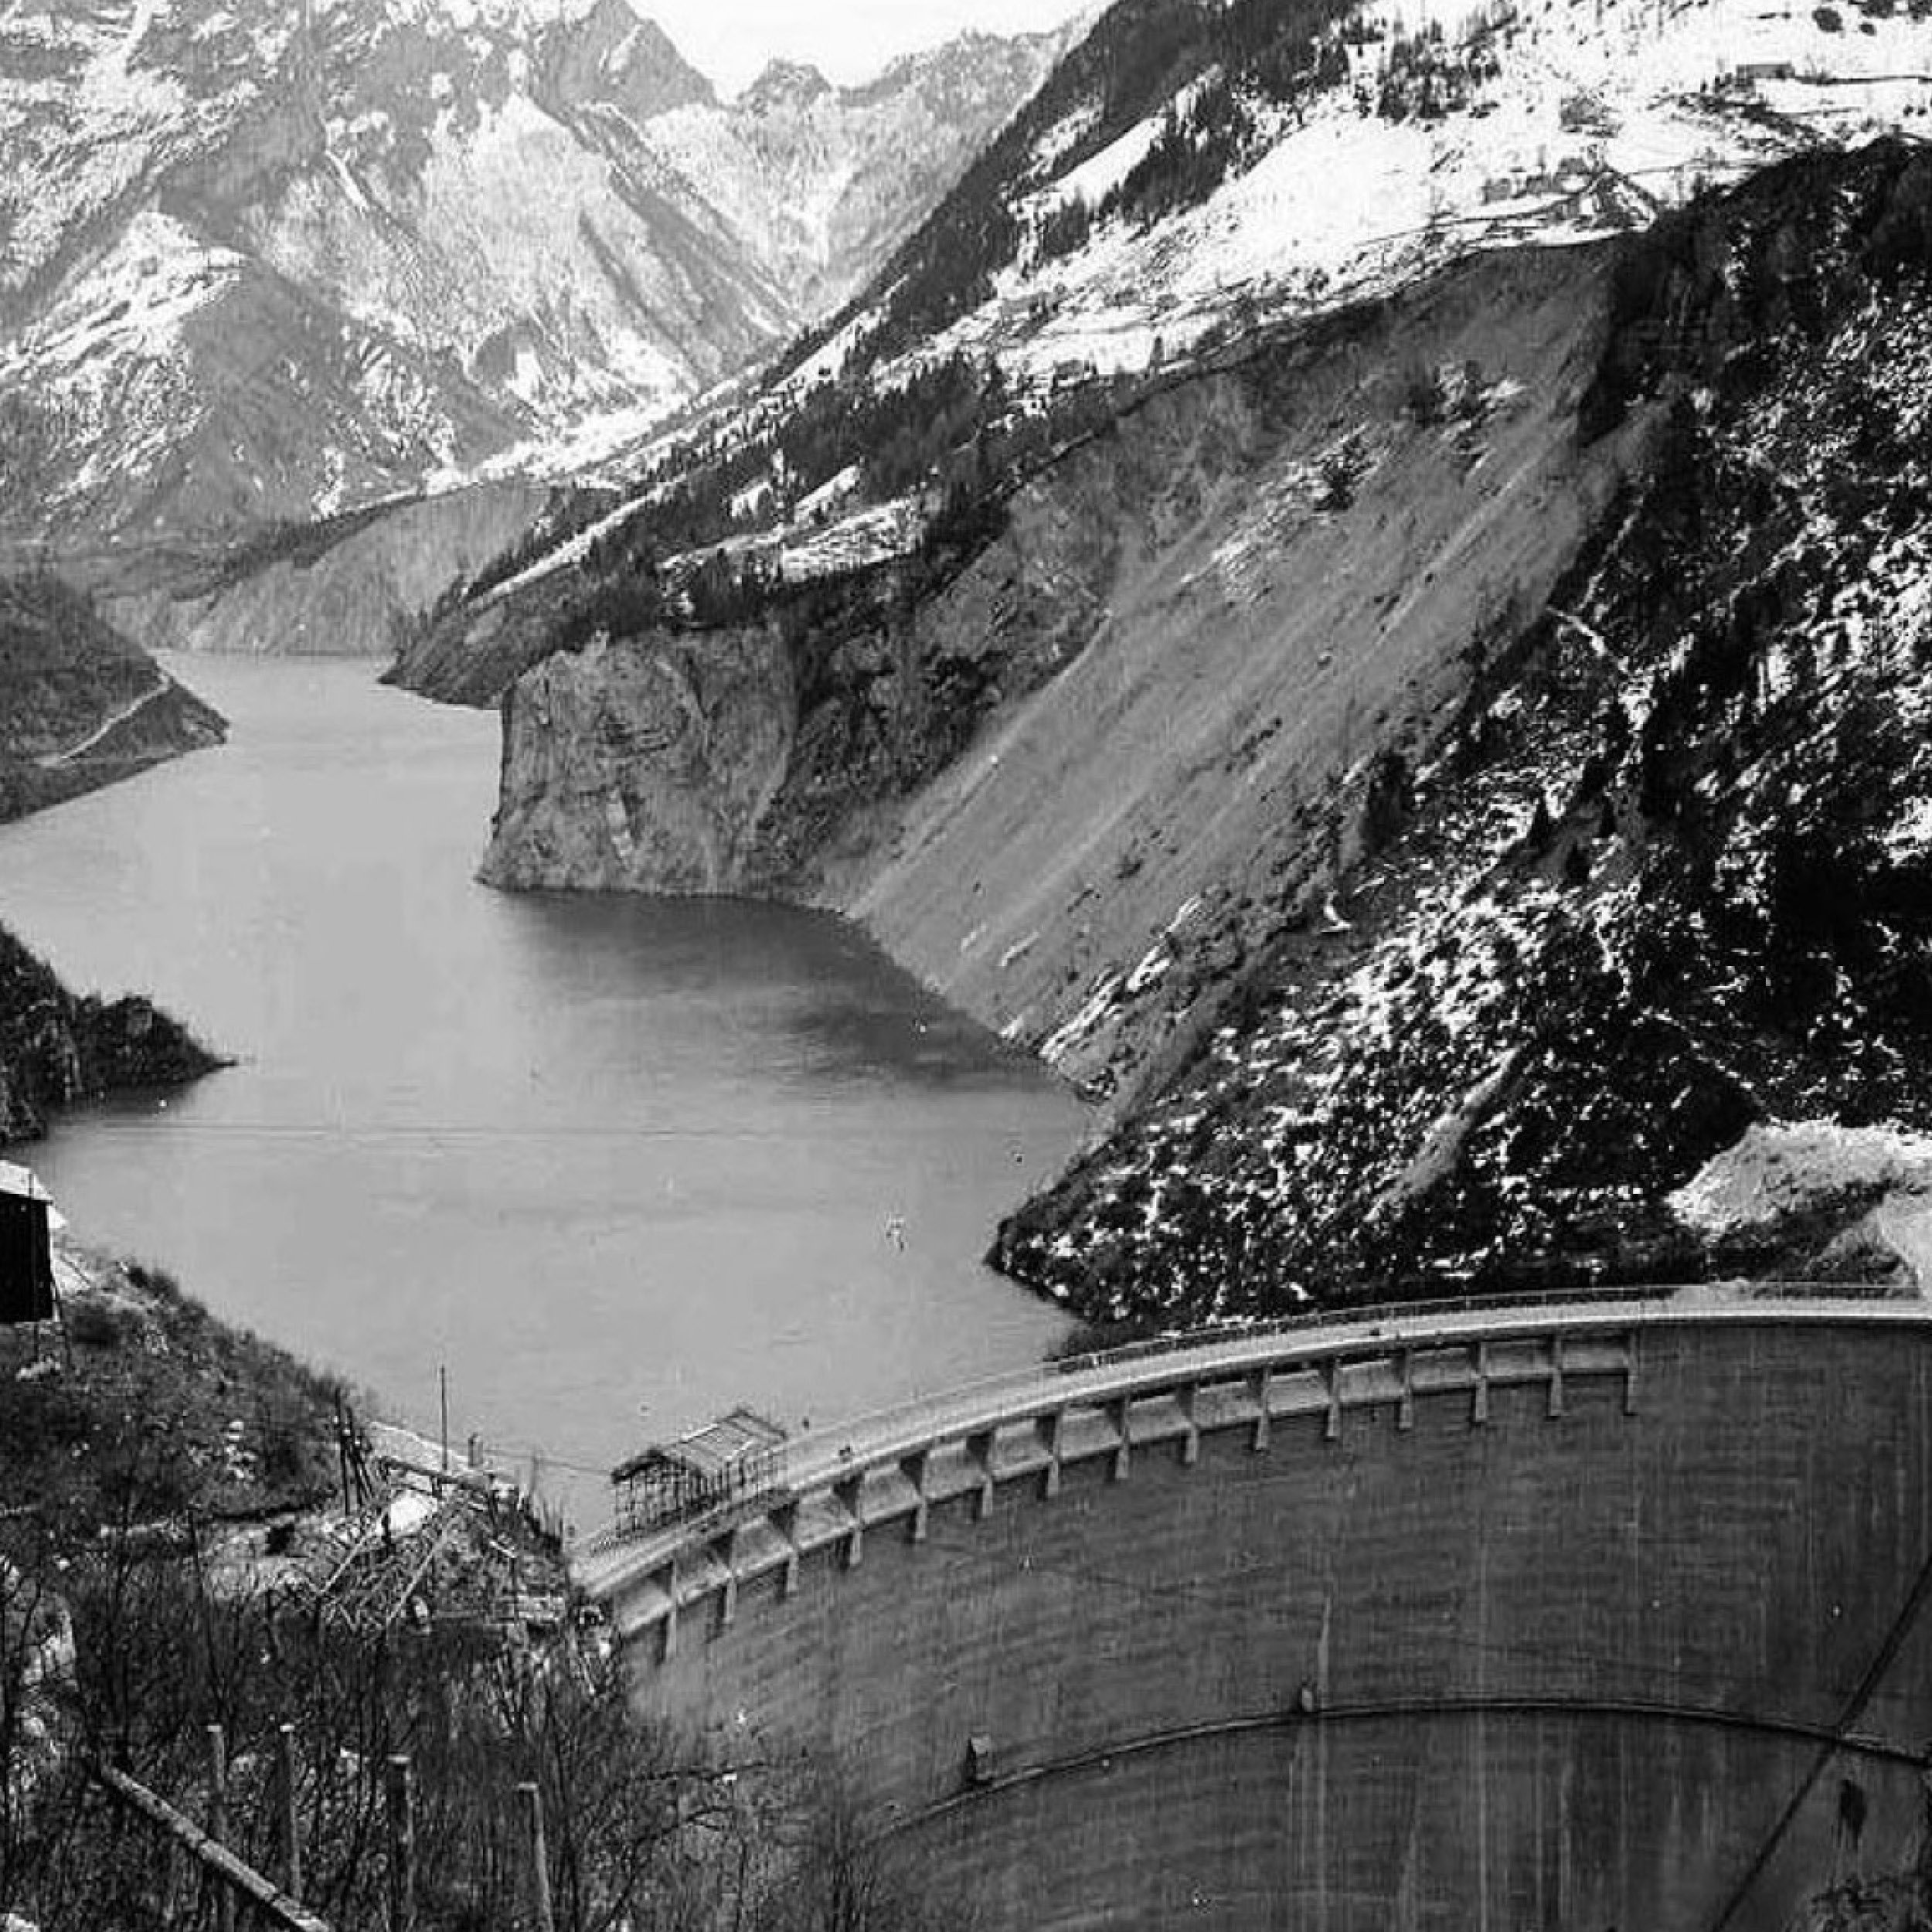 Podcast: Il disastro del Vajont del 1963